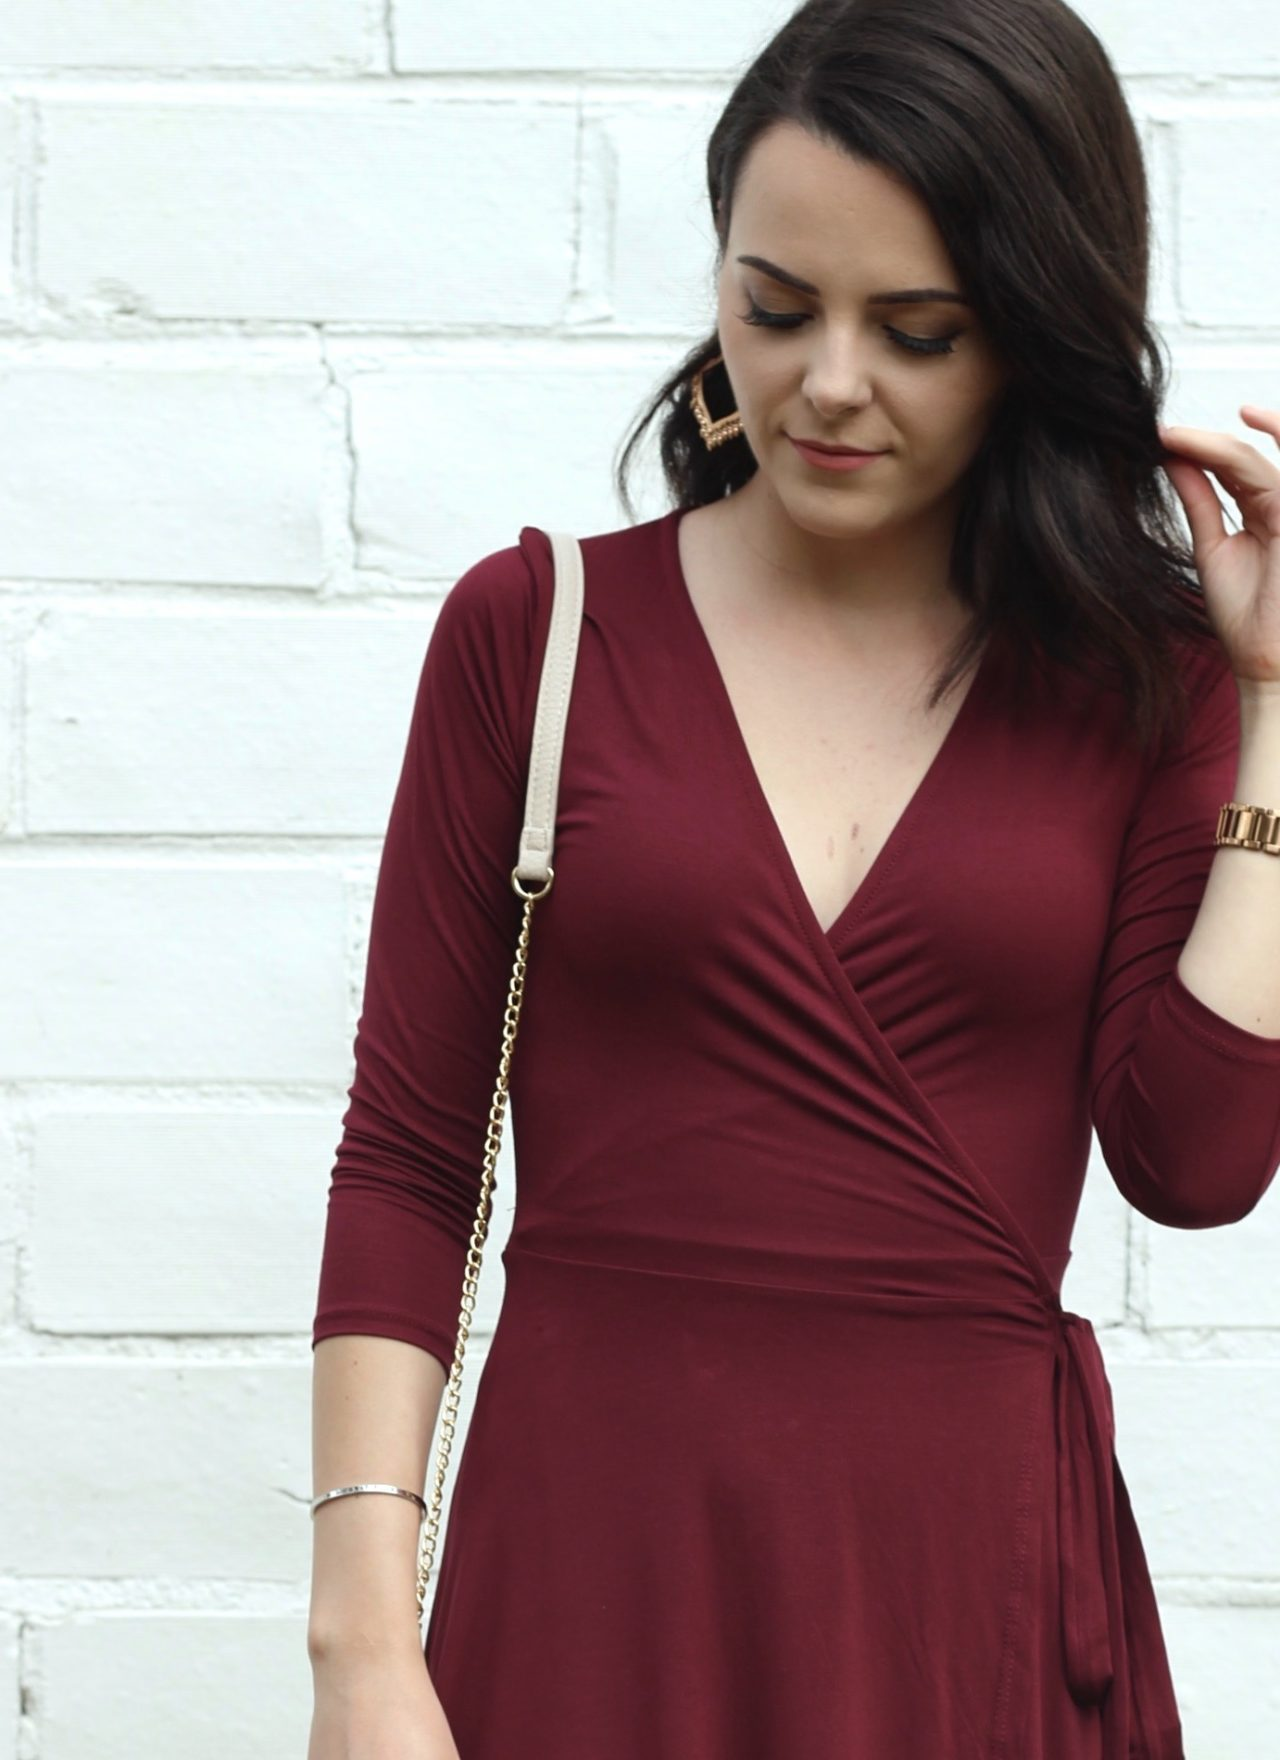 Wrap Dress : Wedding Guest Outfit